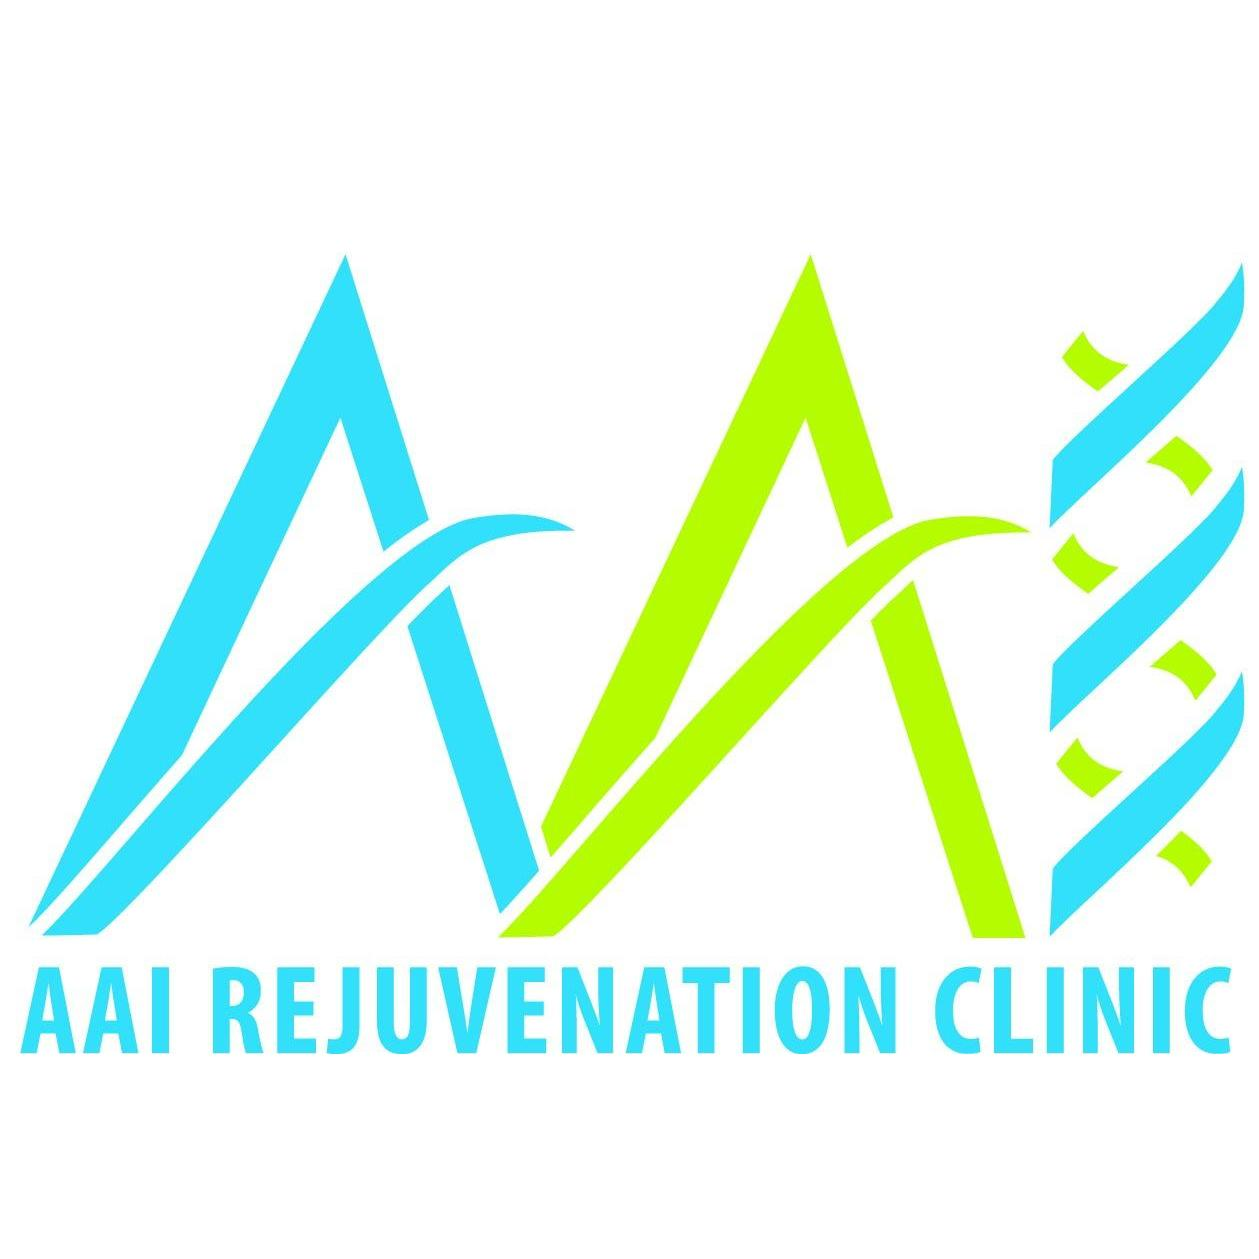 image of the AAI Rejuvenation Clinic